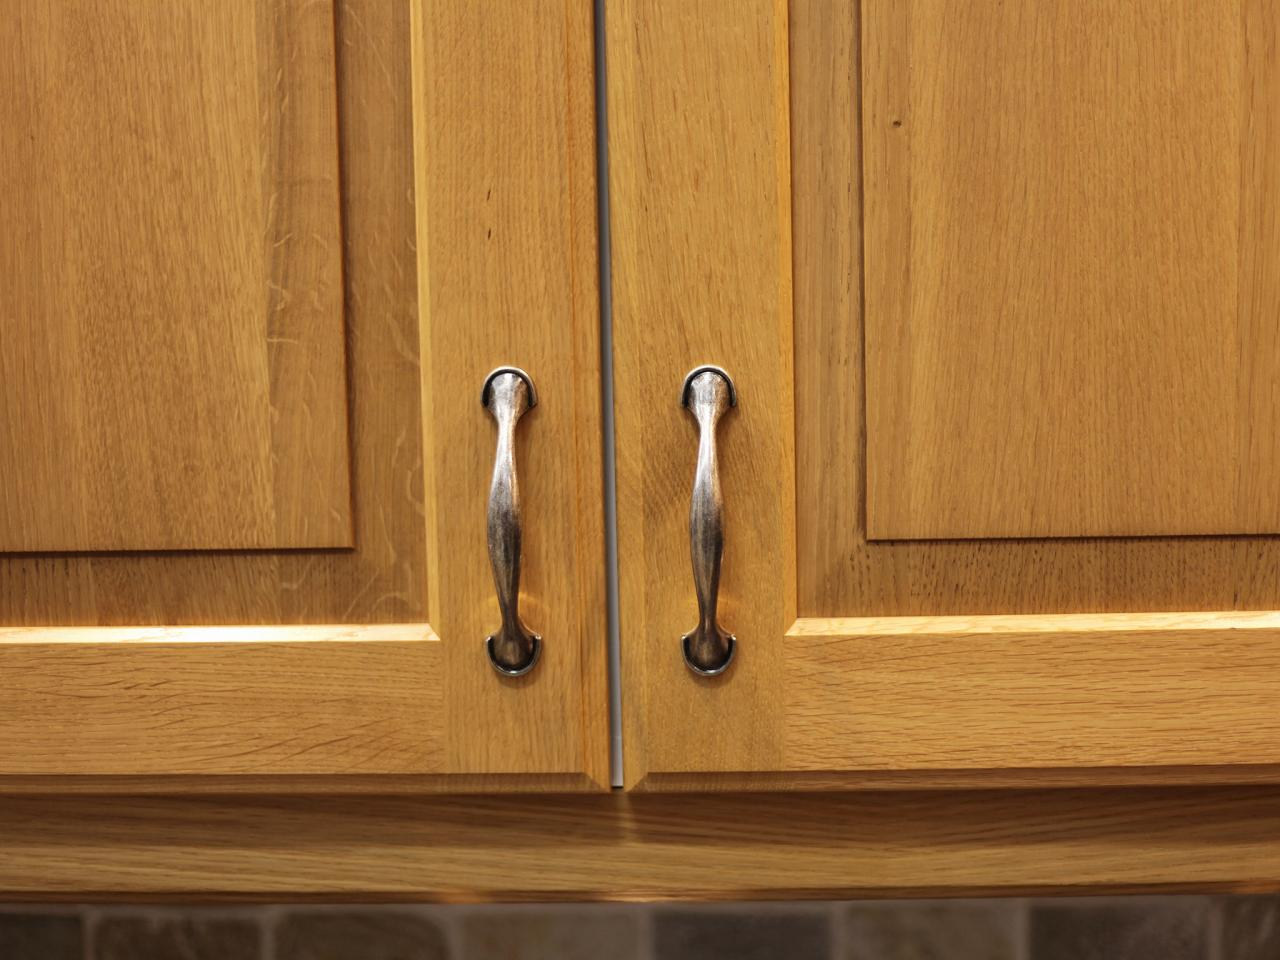 Kitchen Cabinet Handles: Pictures, Options, Tips & Ideas